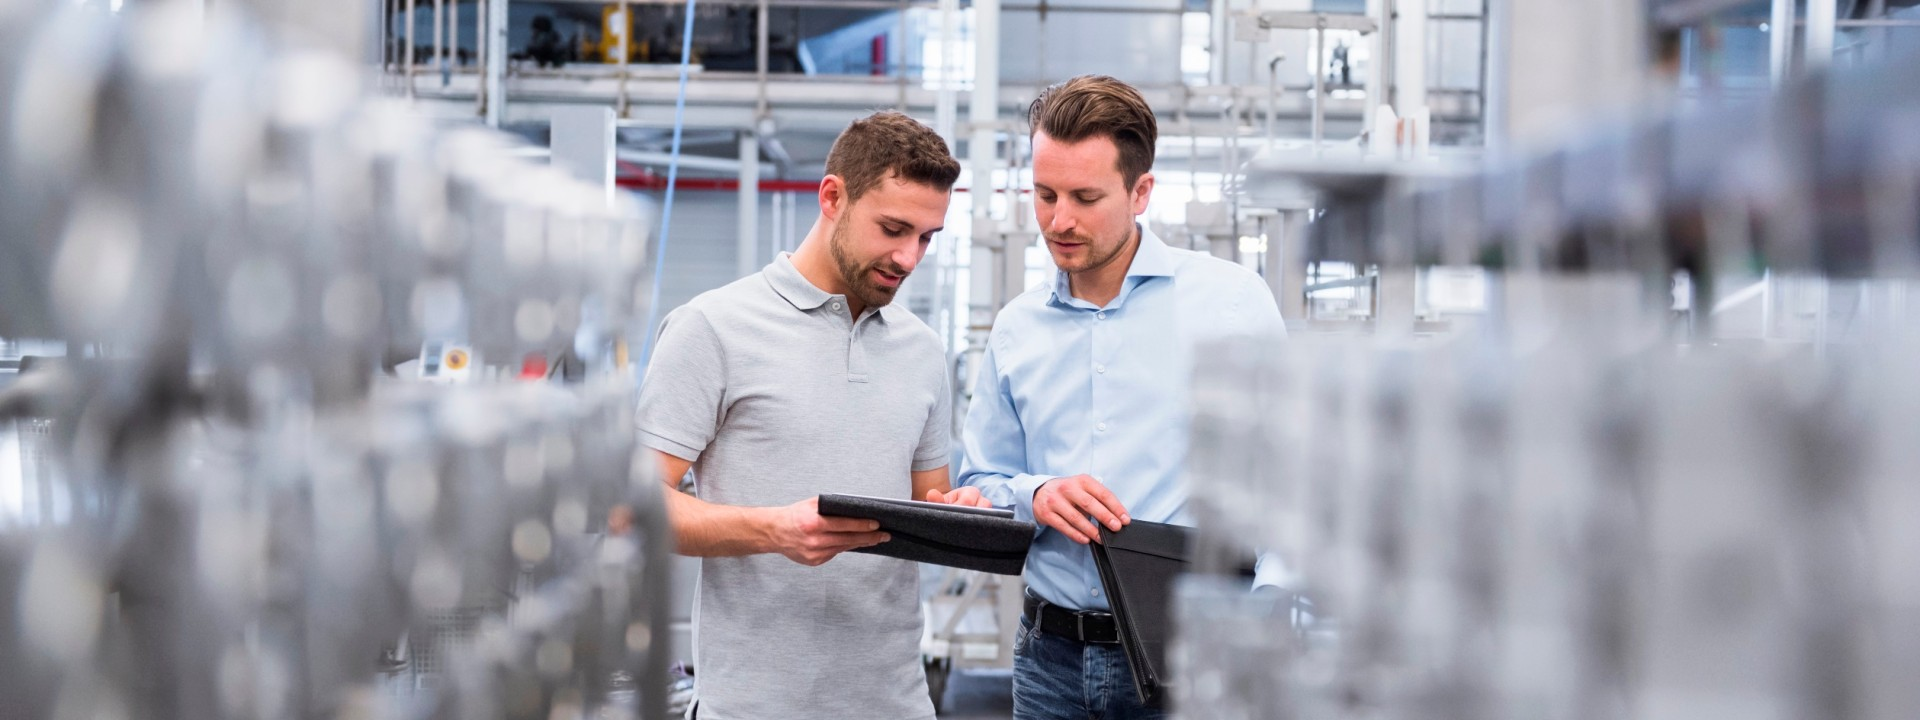 Standards that allow remote audits | TÜV Rheinland